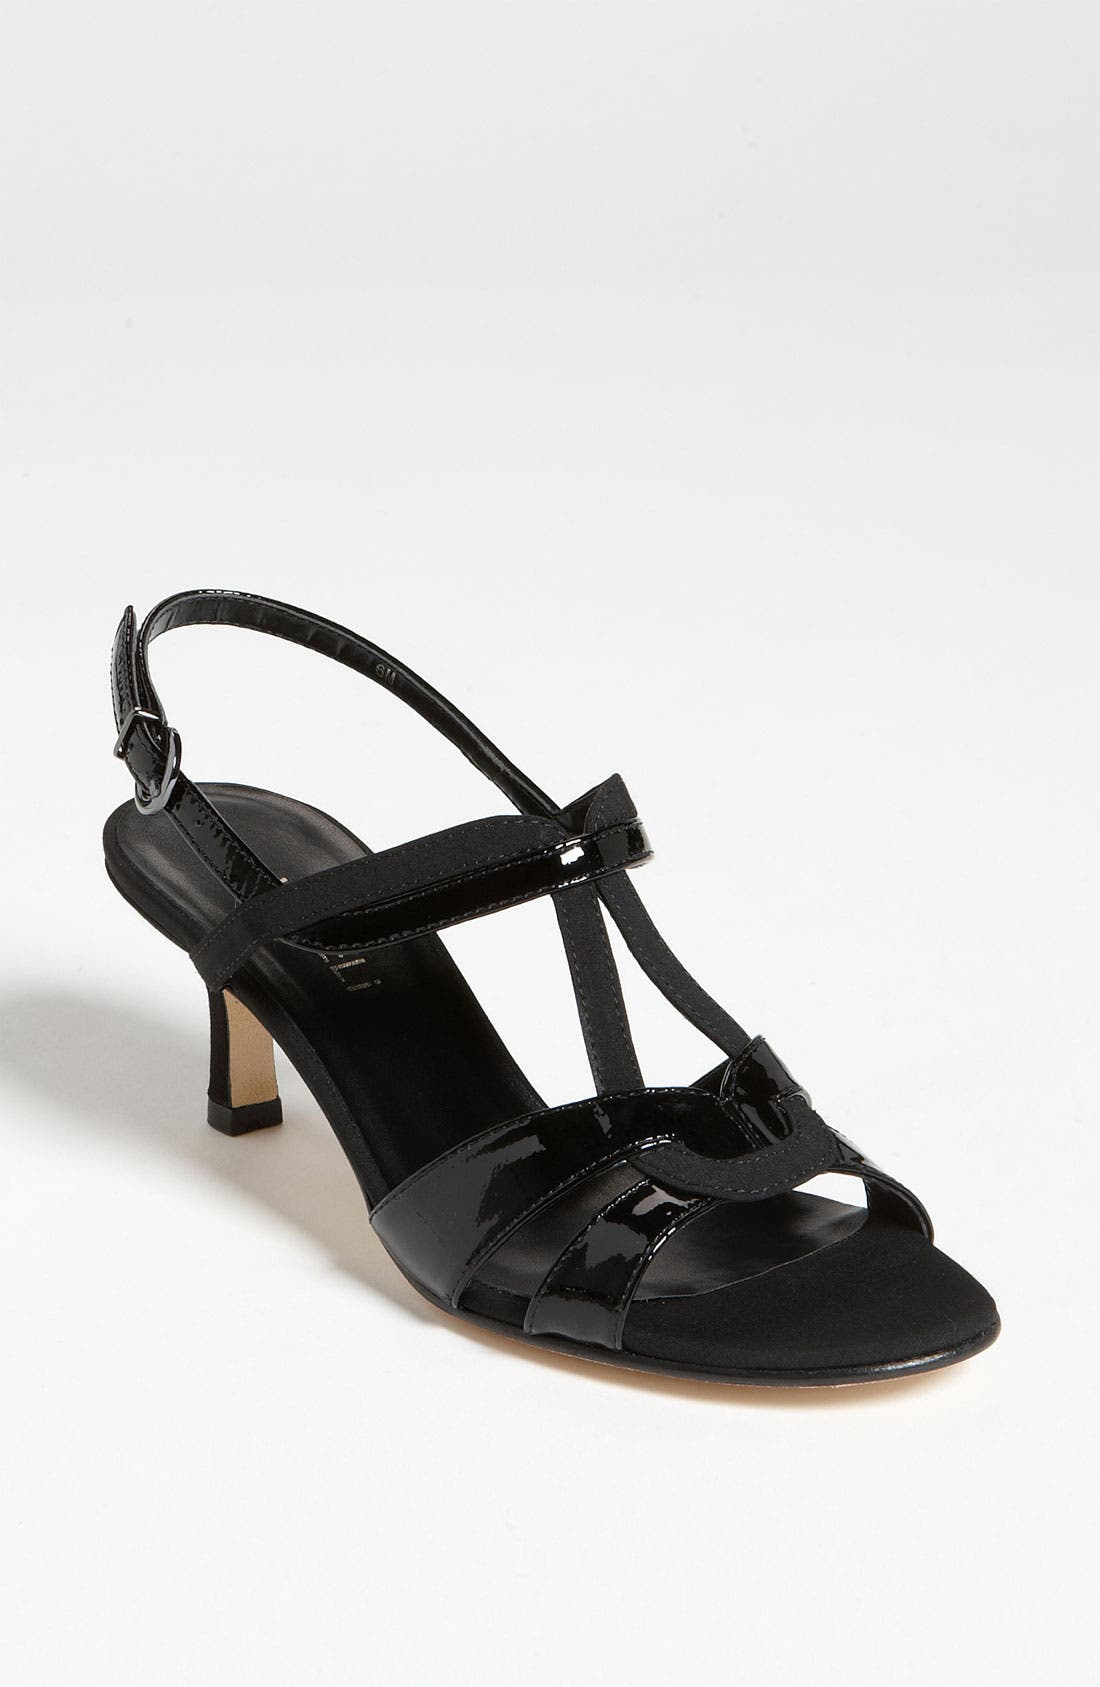 Alternate Image 1 Selected - VANELi 'Mathea' Sandal